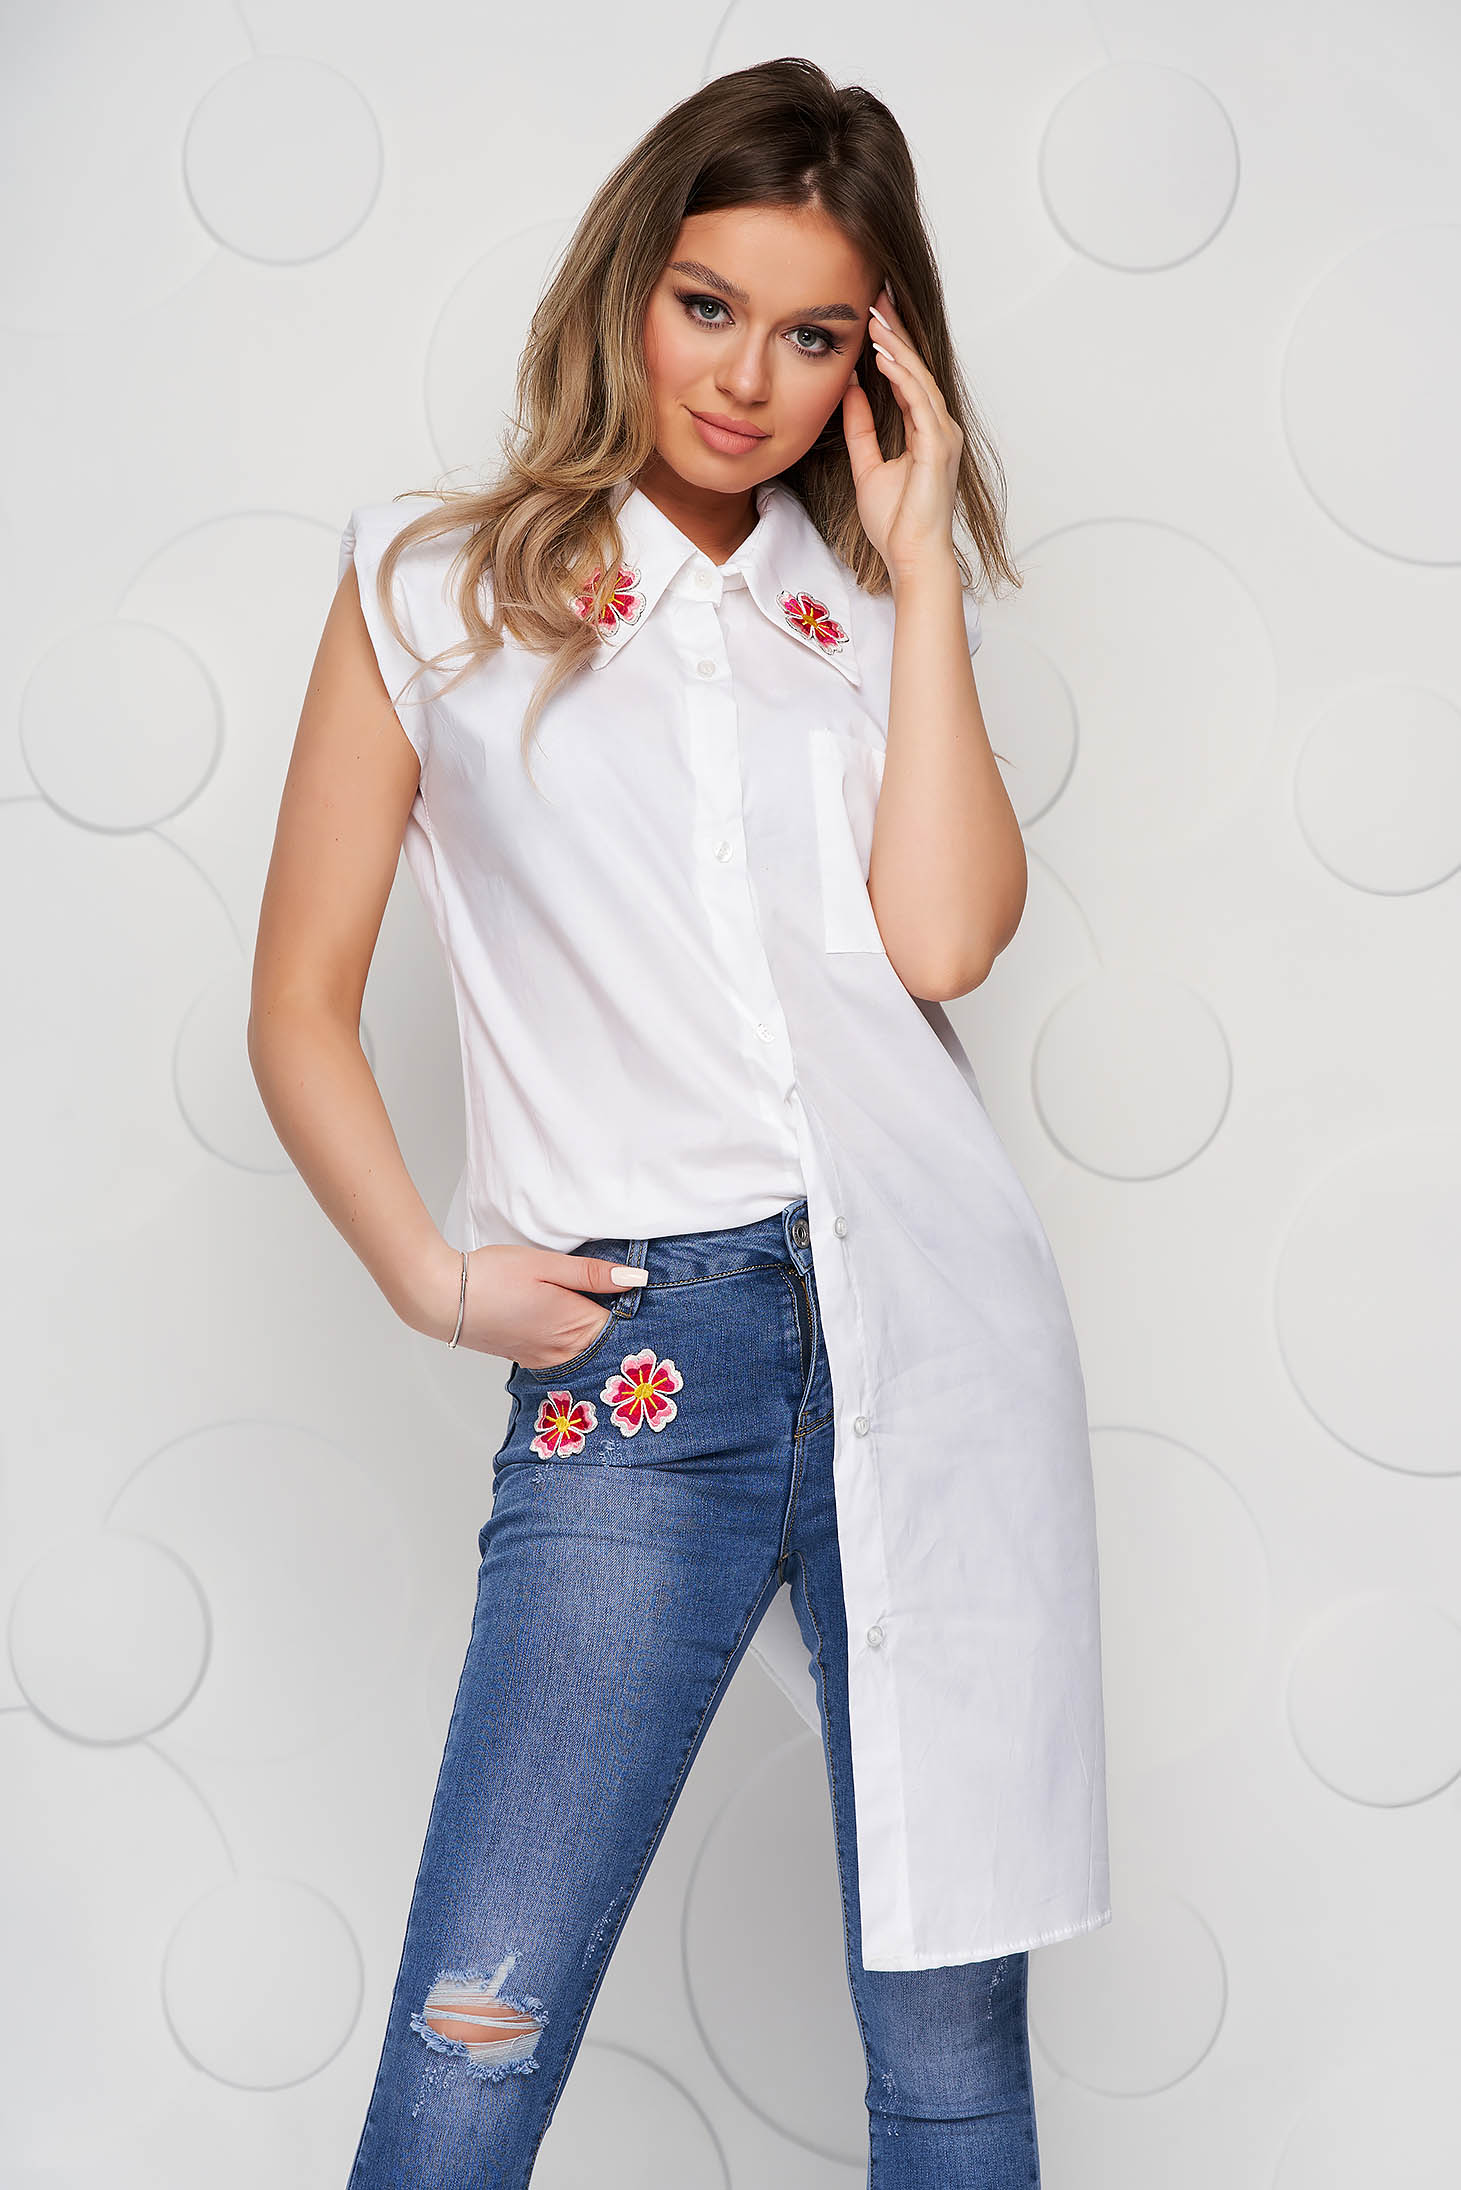 White women`s shirt poplin, thin cotton short sleeve loose fit embroidered